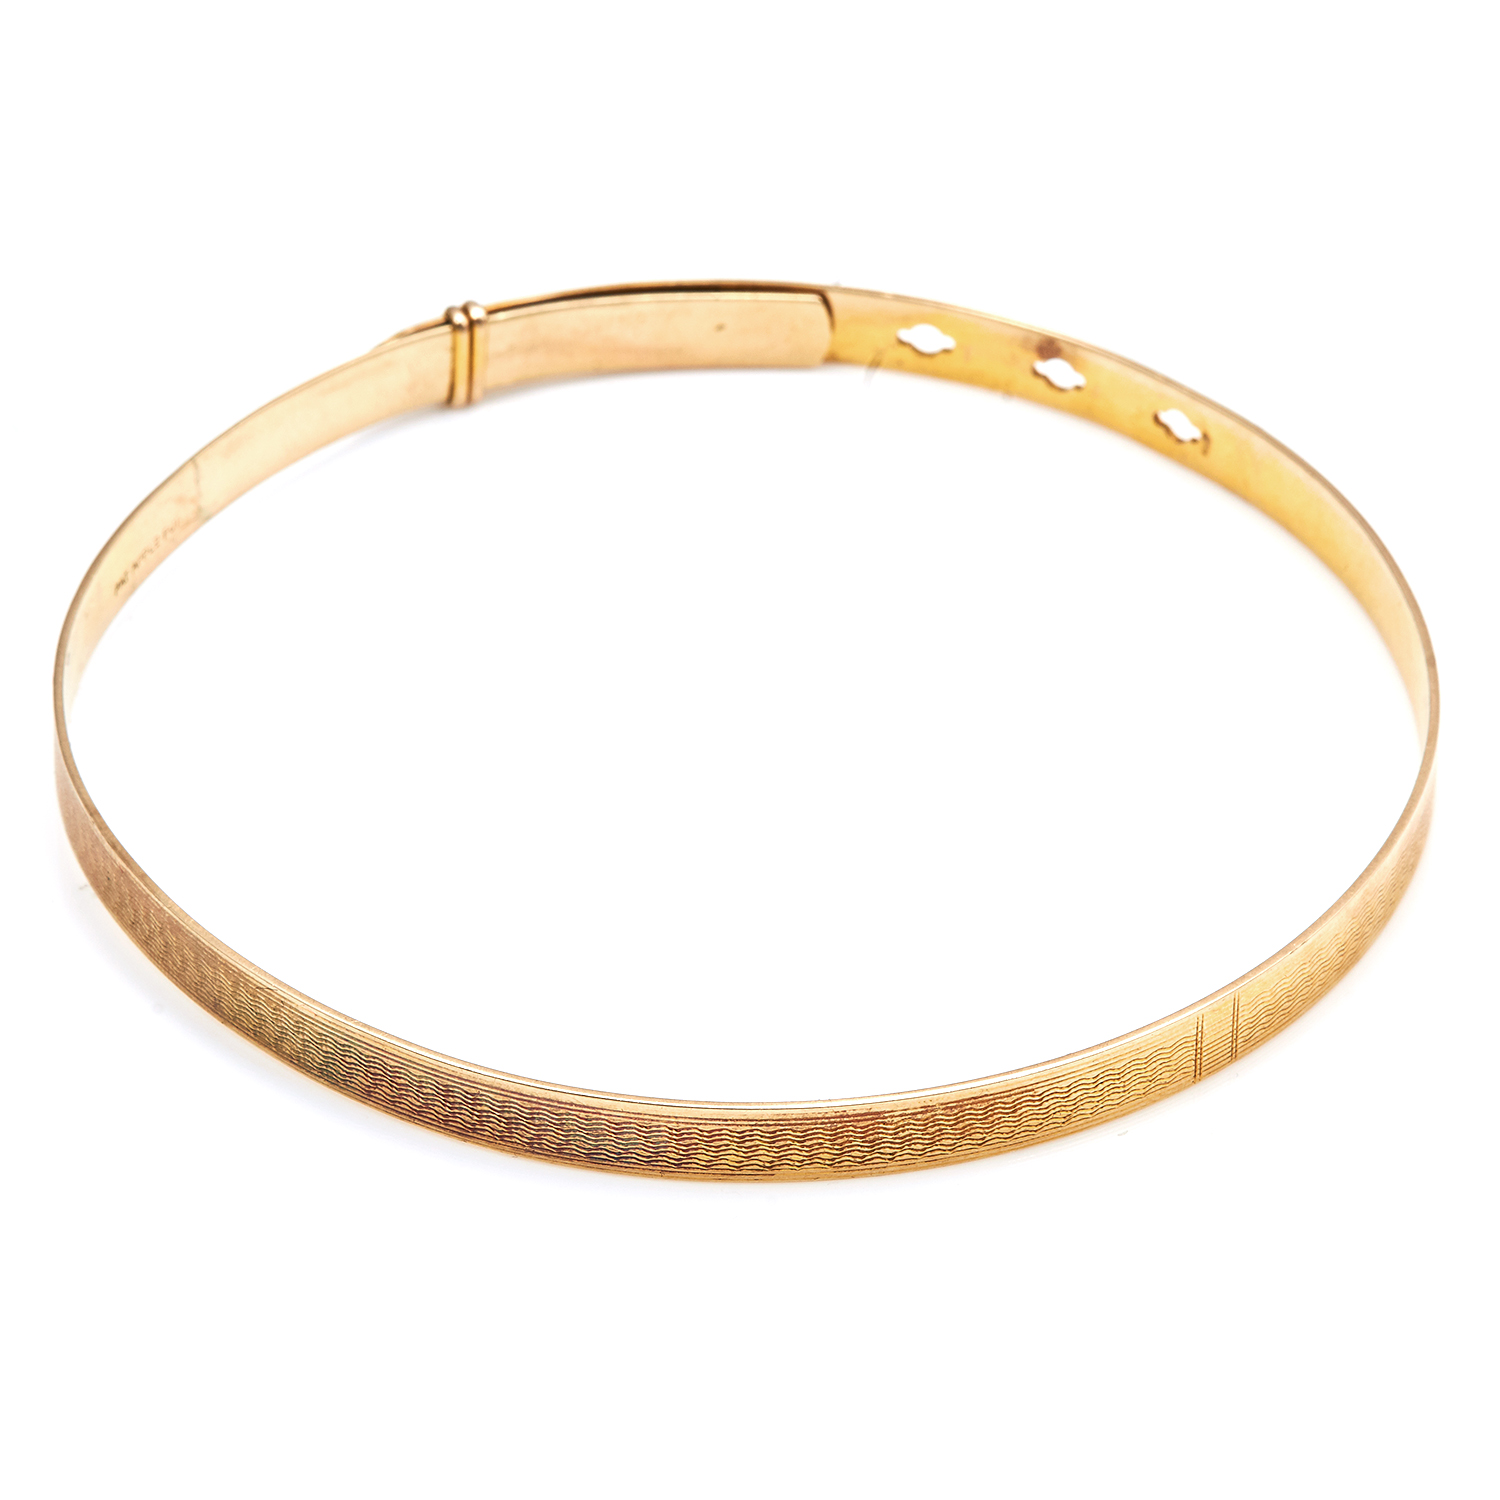 Los 339 - AN ANTIQUE GOLD DOG COLLAR in 9ct yellow gold, with engraved details to the front of the collar,